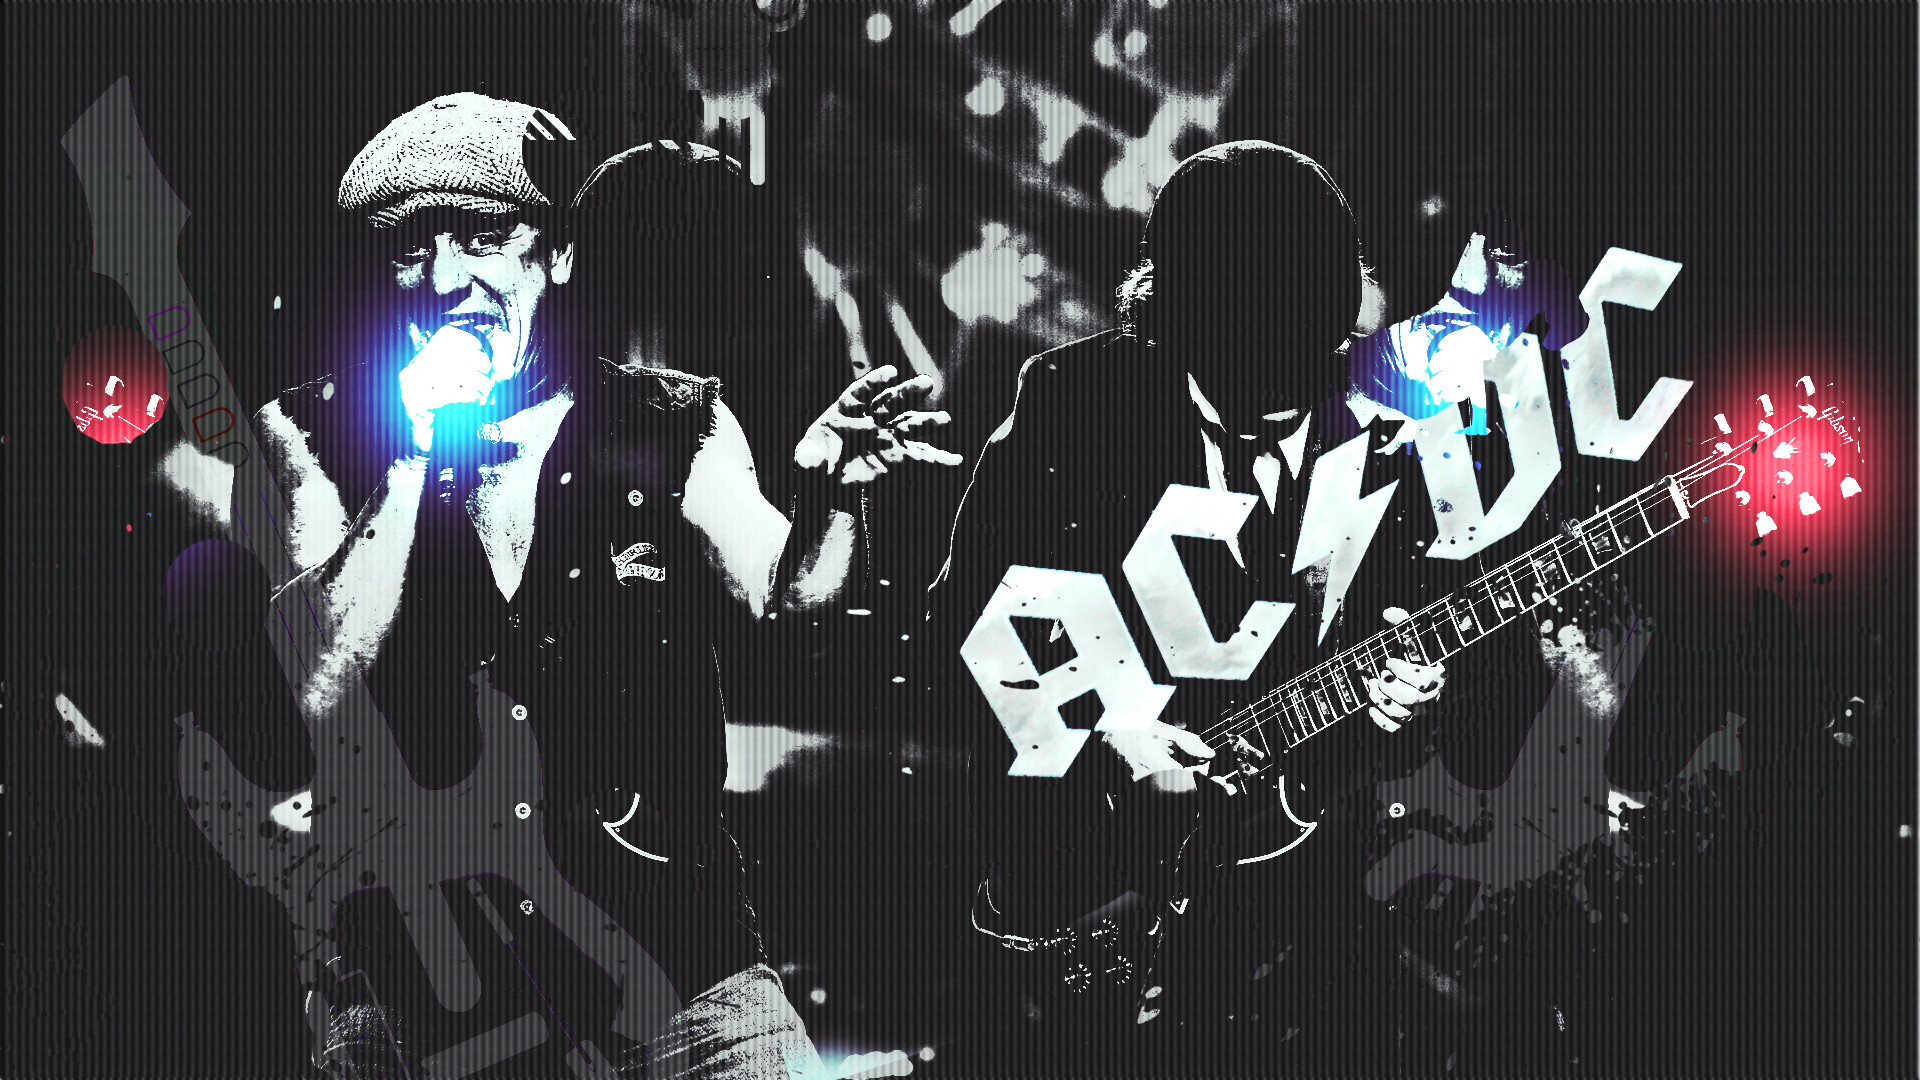 ac/dc hd wallpapers + extras (excelente post)